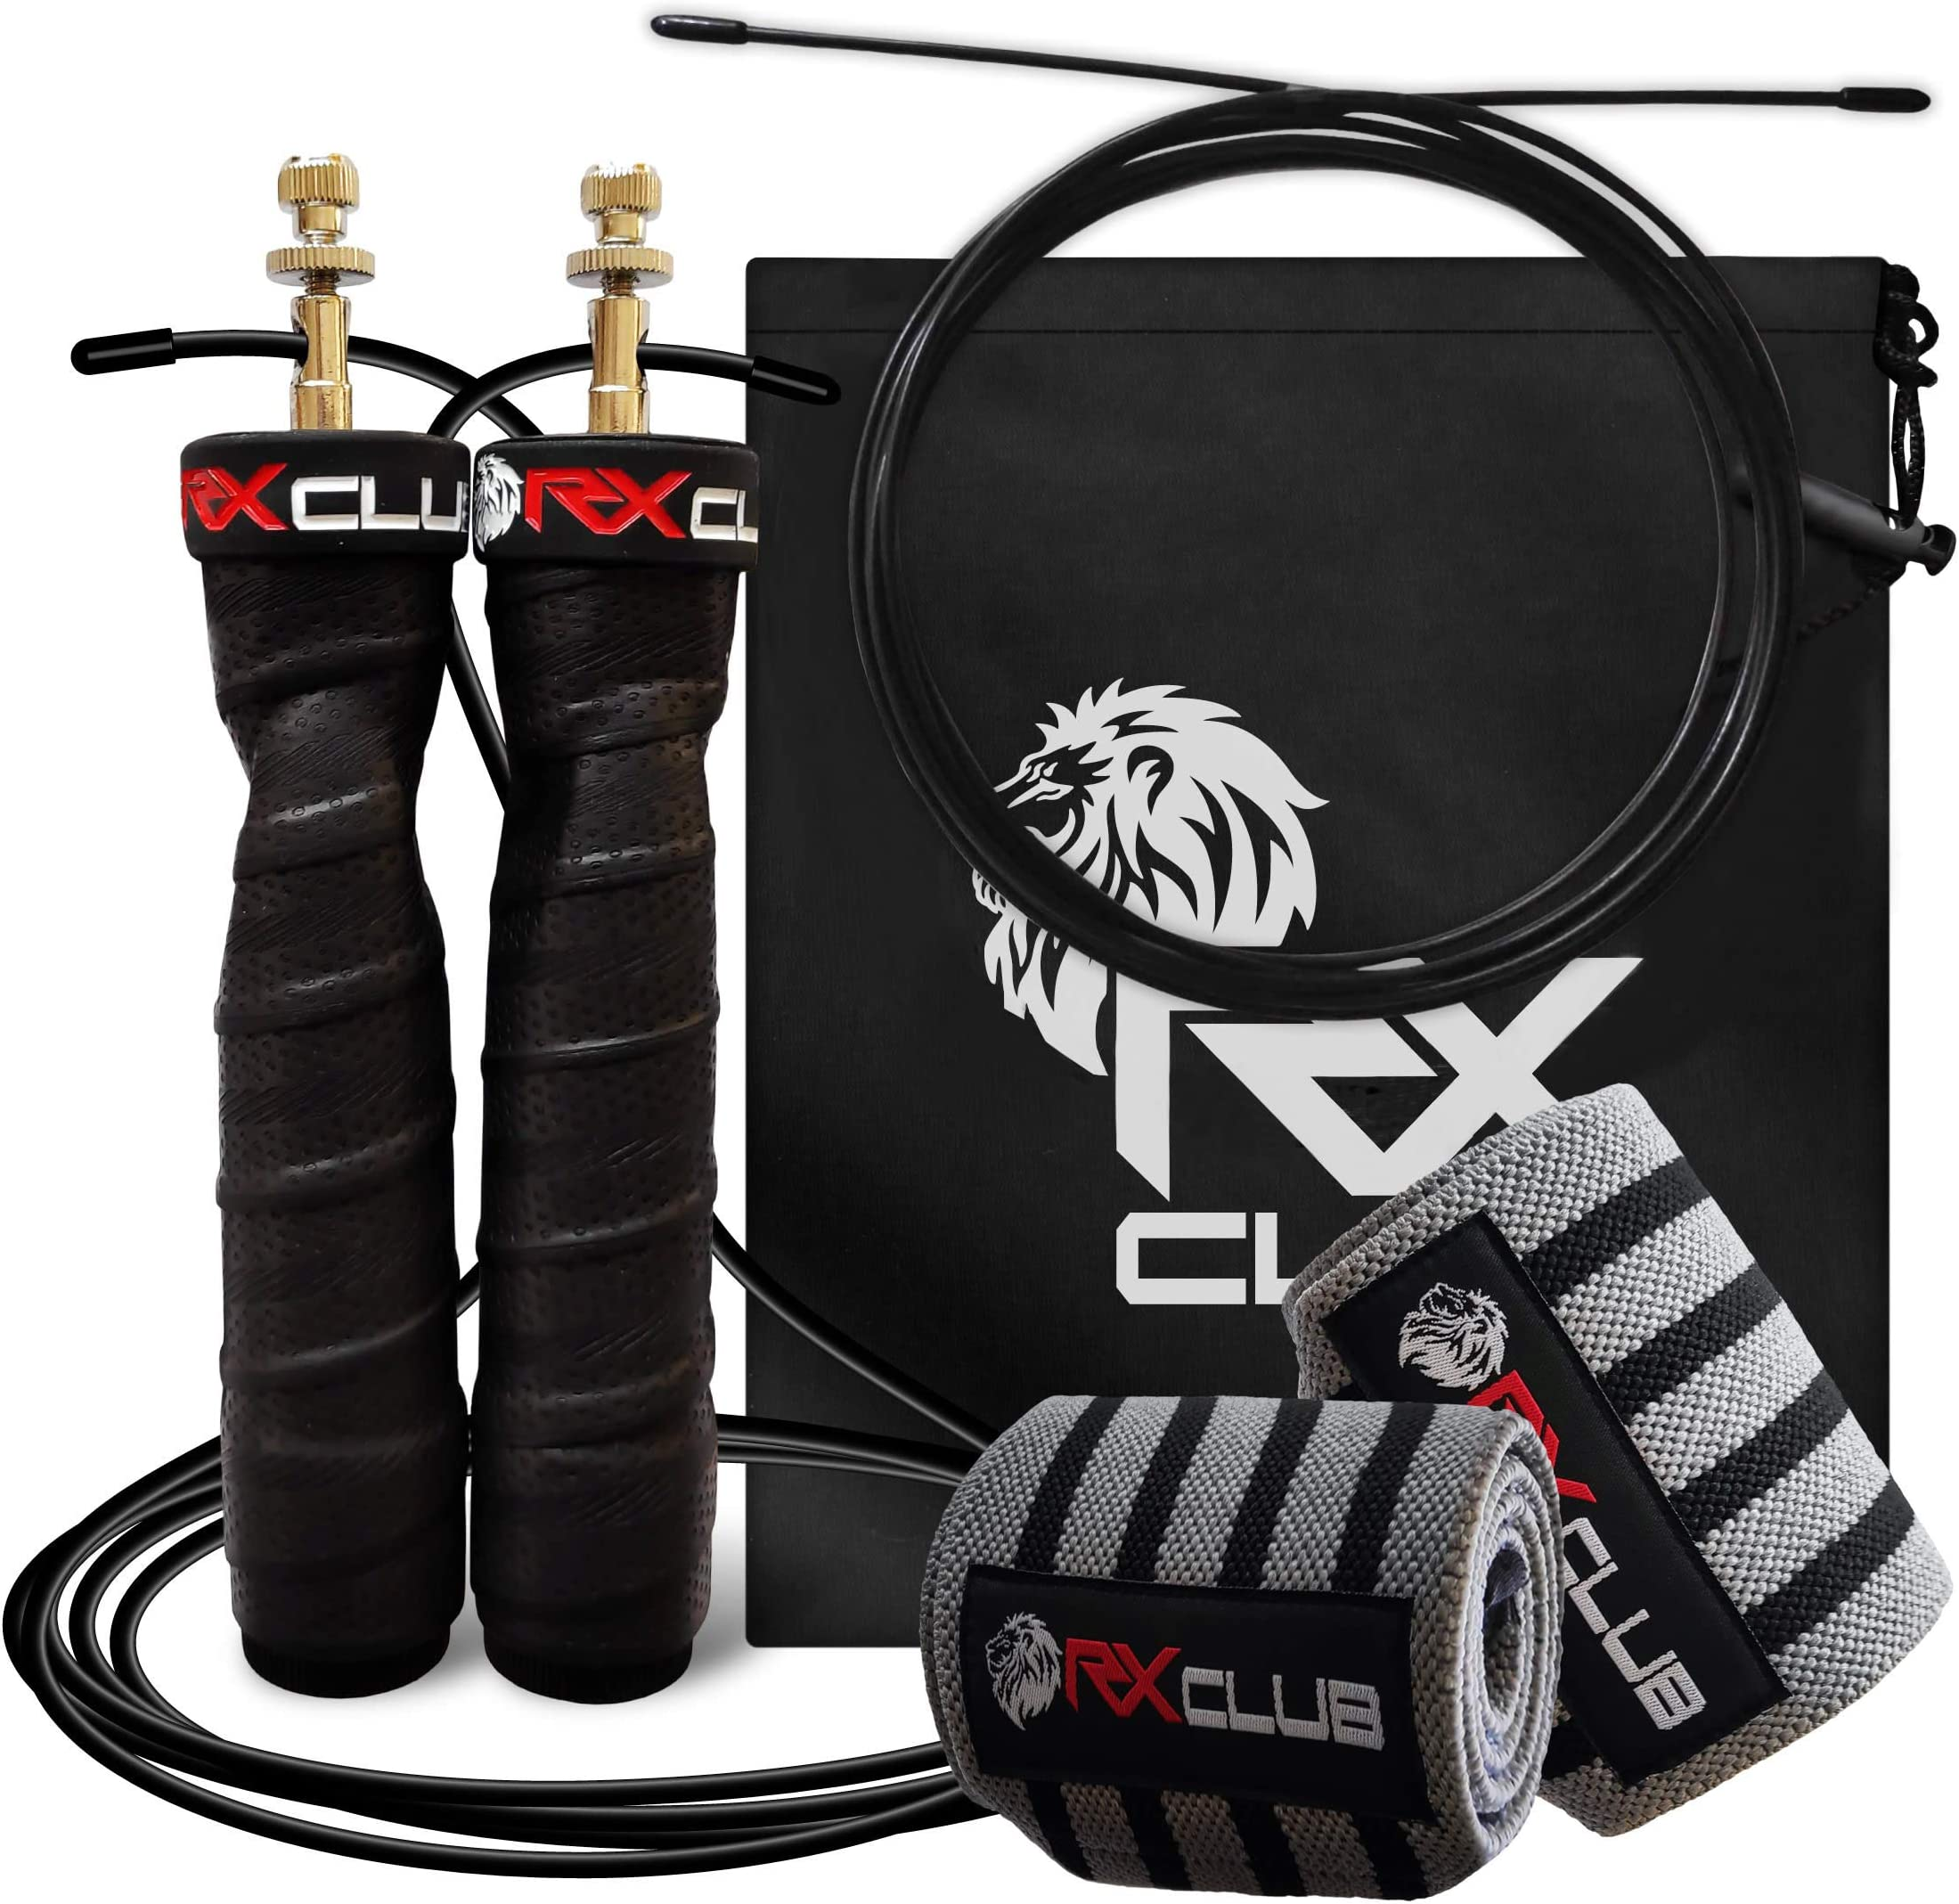 3 steel spare cablesIdeal for Crossfit,... BRANK SPORTS® Speed rope incl